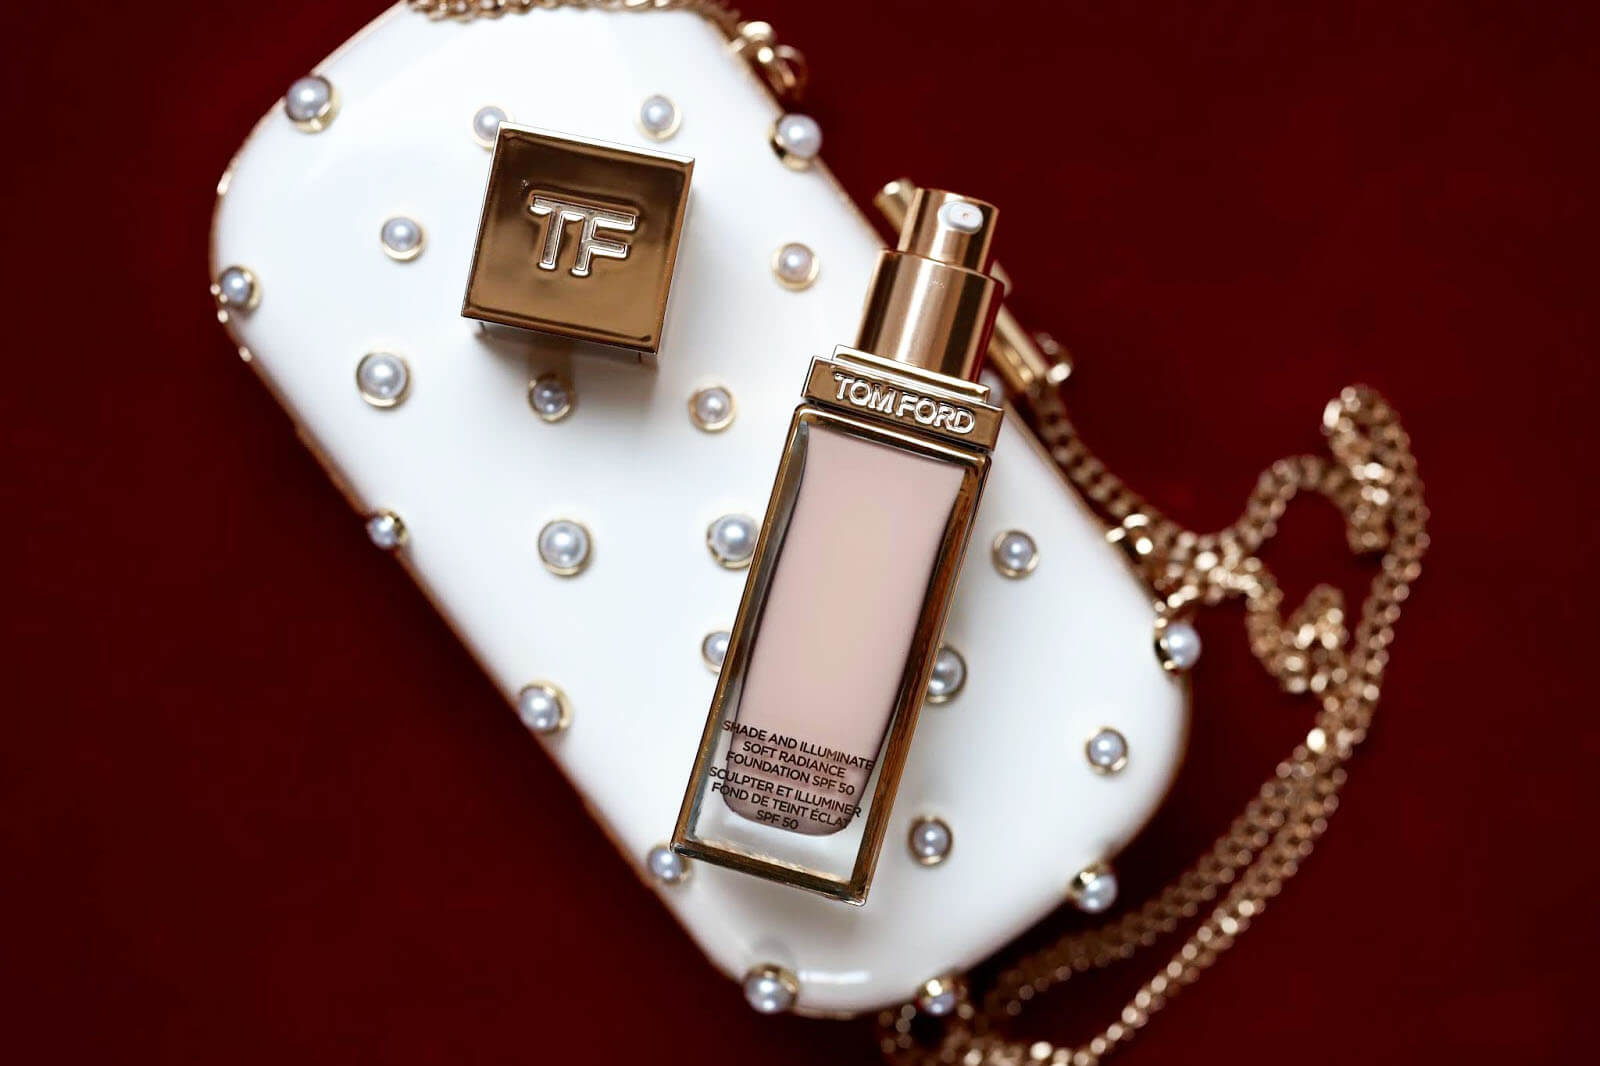 Tom Ford Shade Illuminate Fond de Teint revue